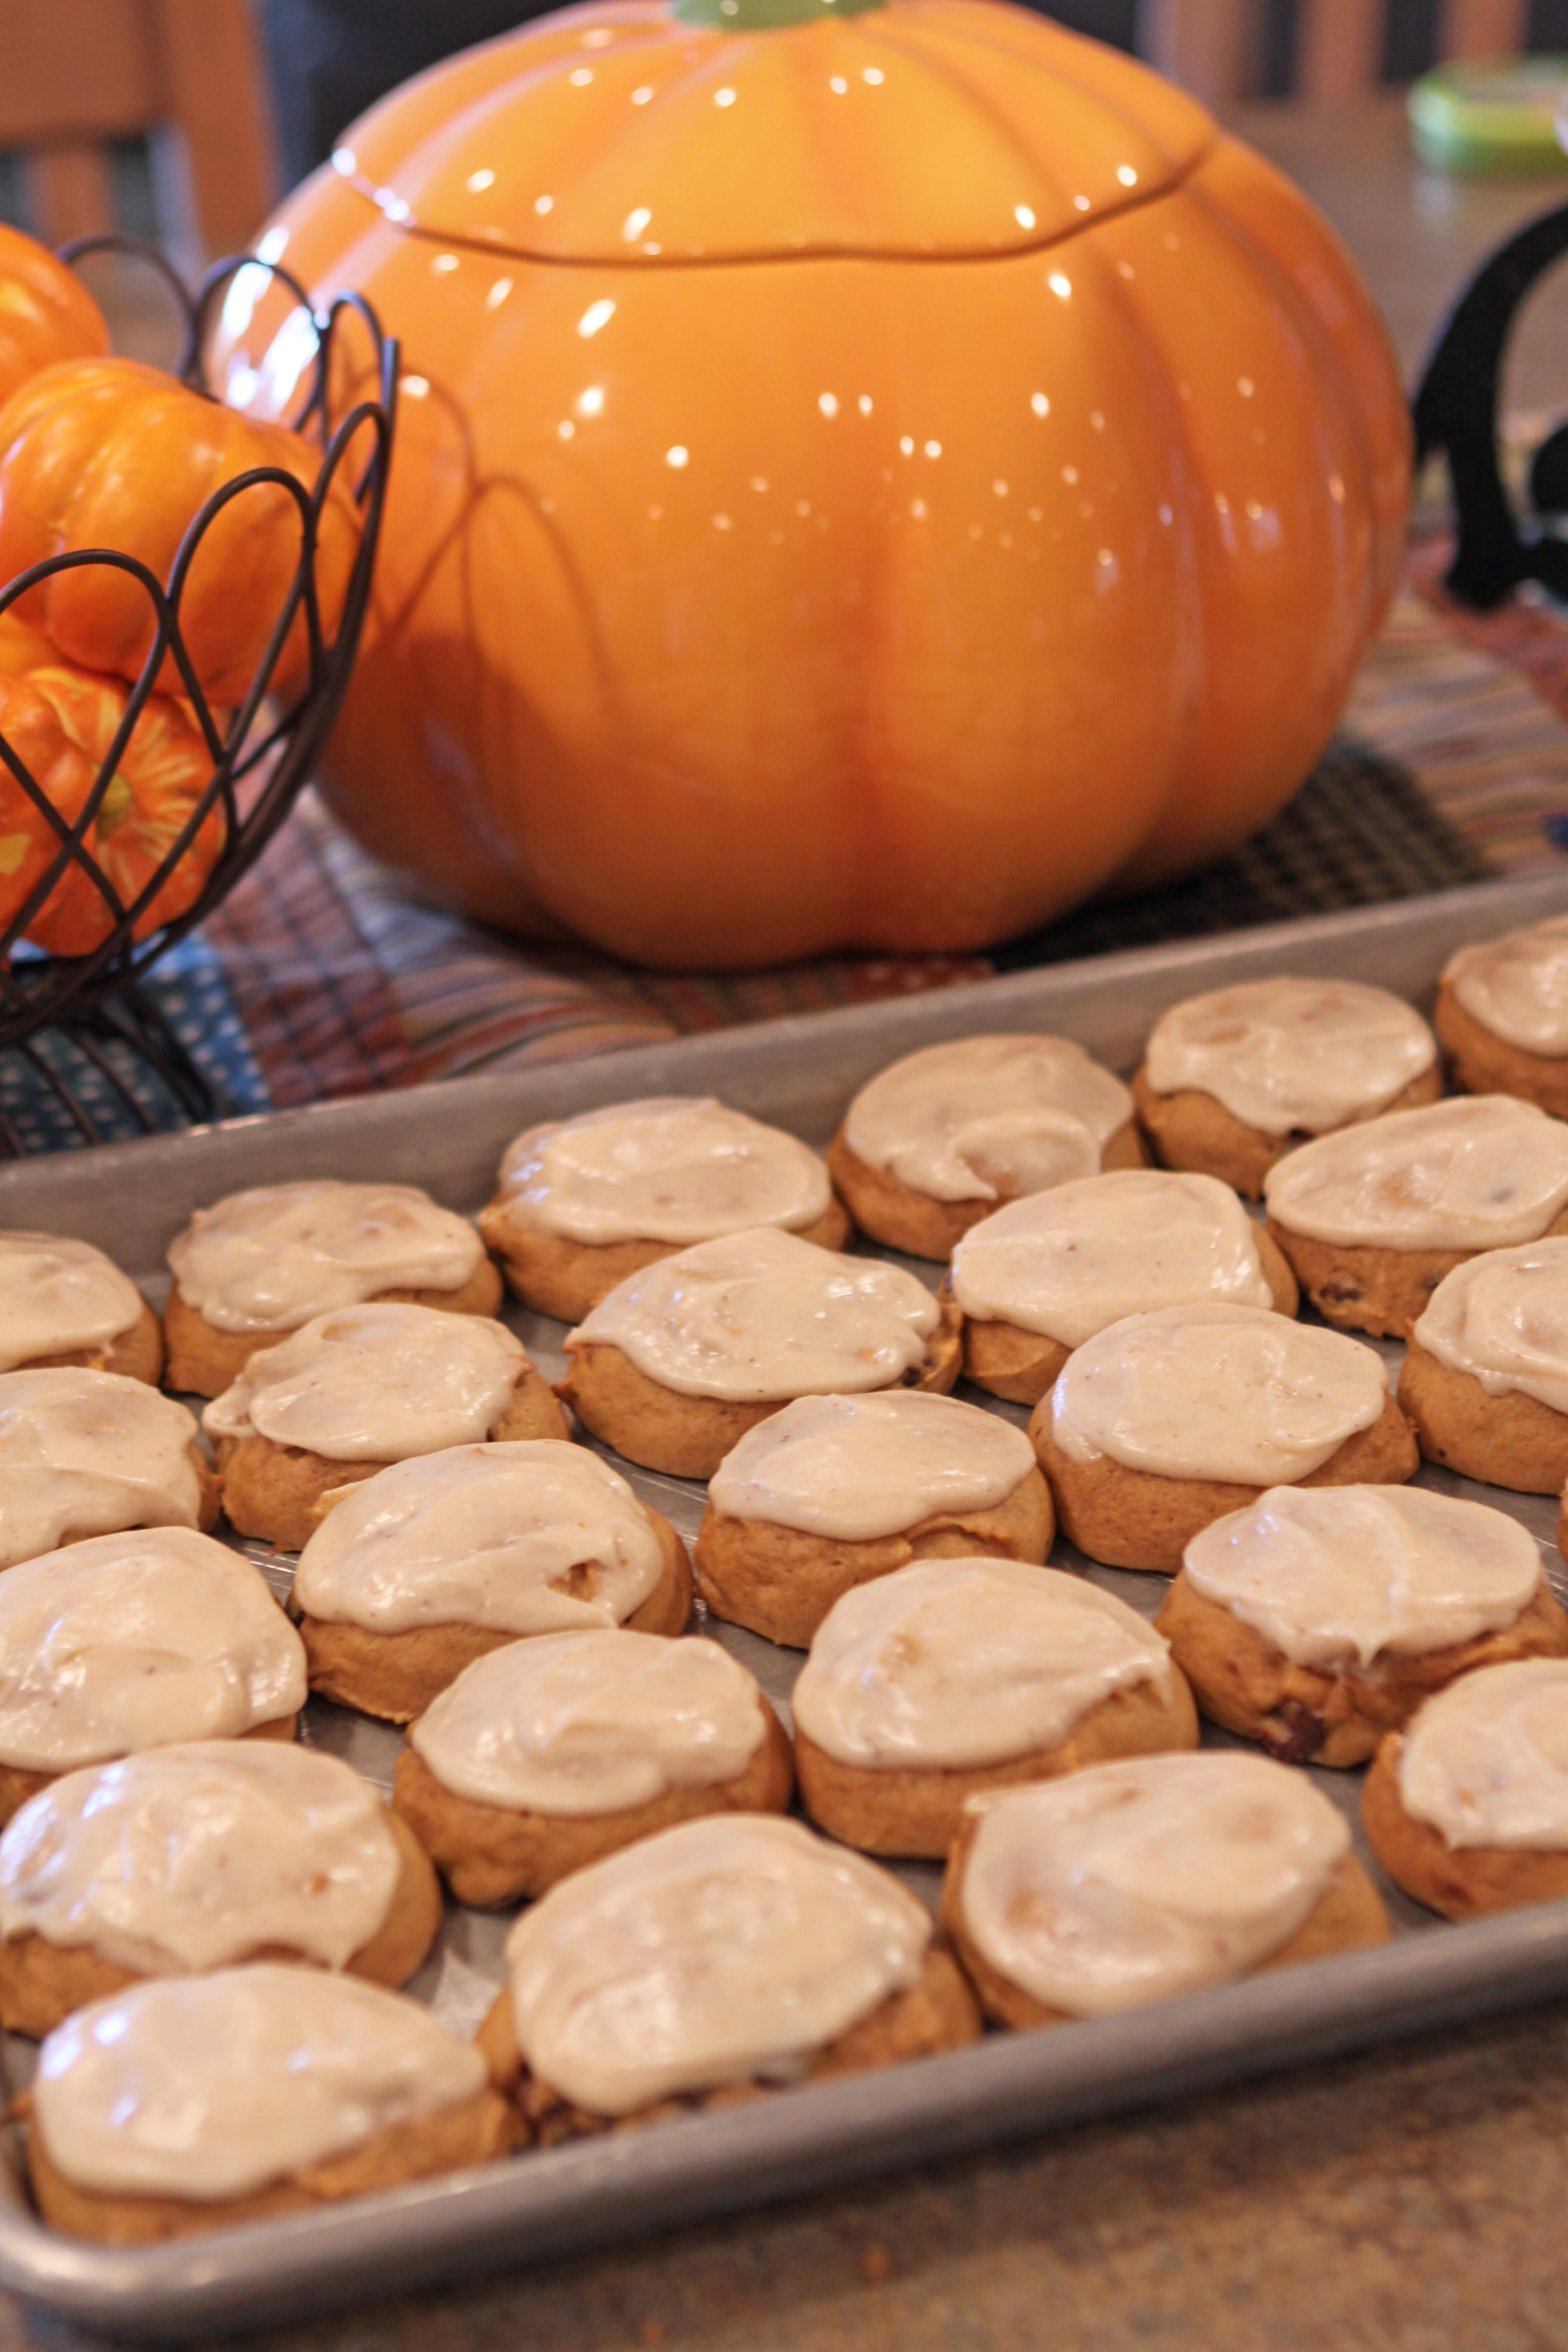 From the Farmer's Wife: Pumpkin Chocolate Chip Cookies with Cinnamon Cream Cheese Frosting